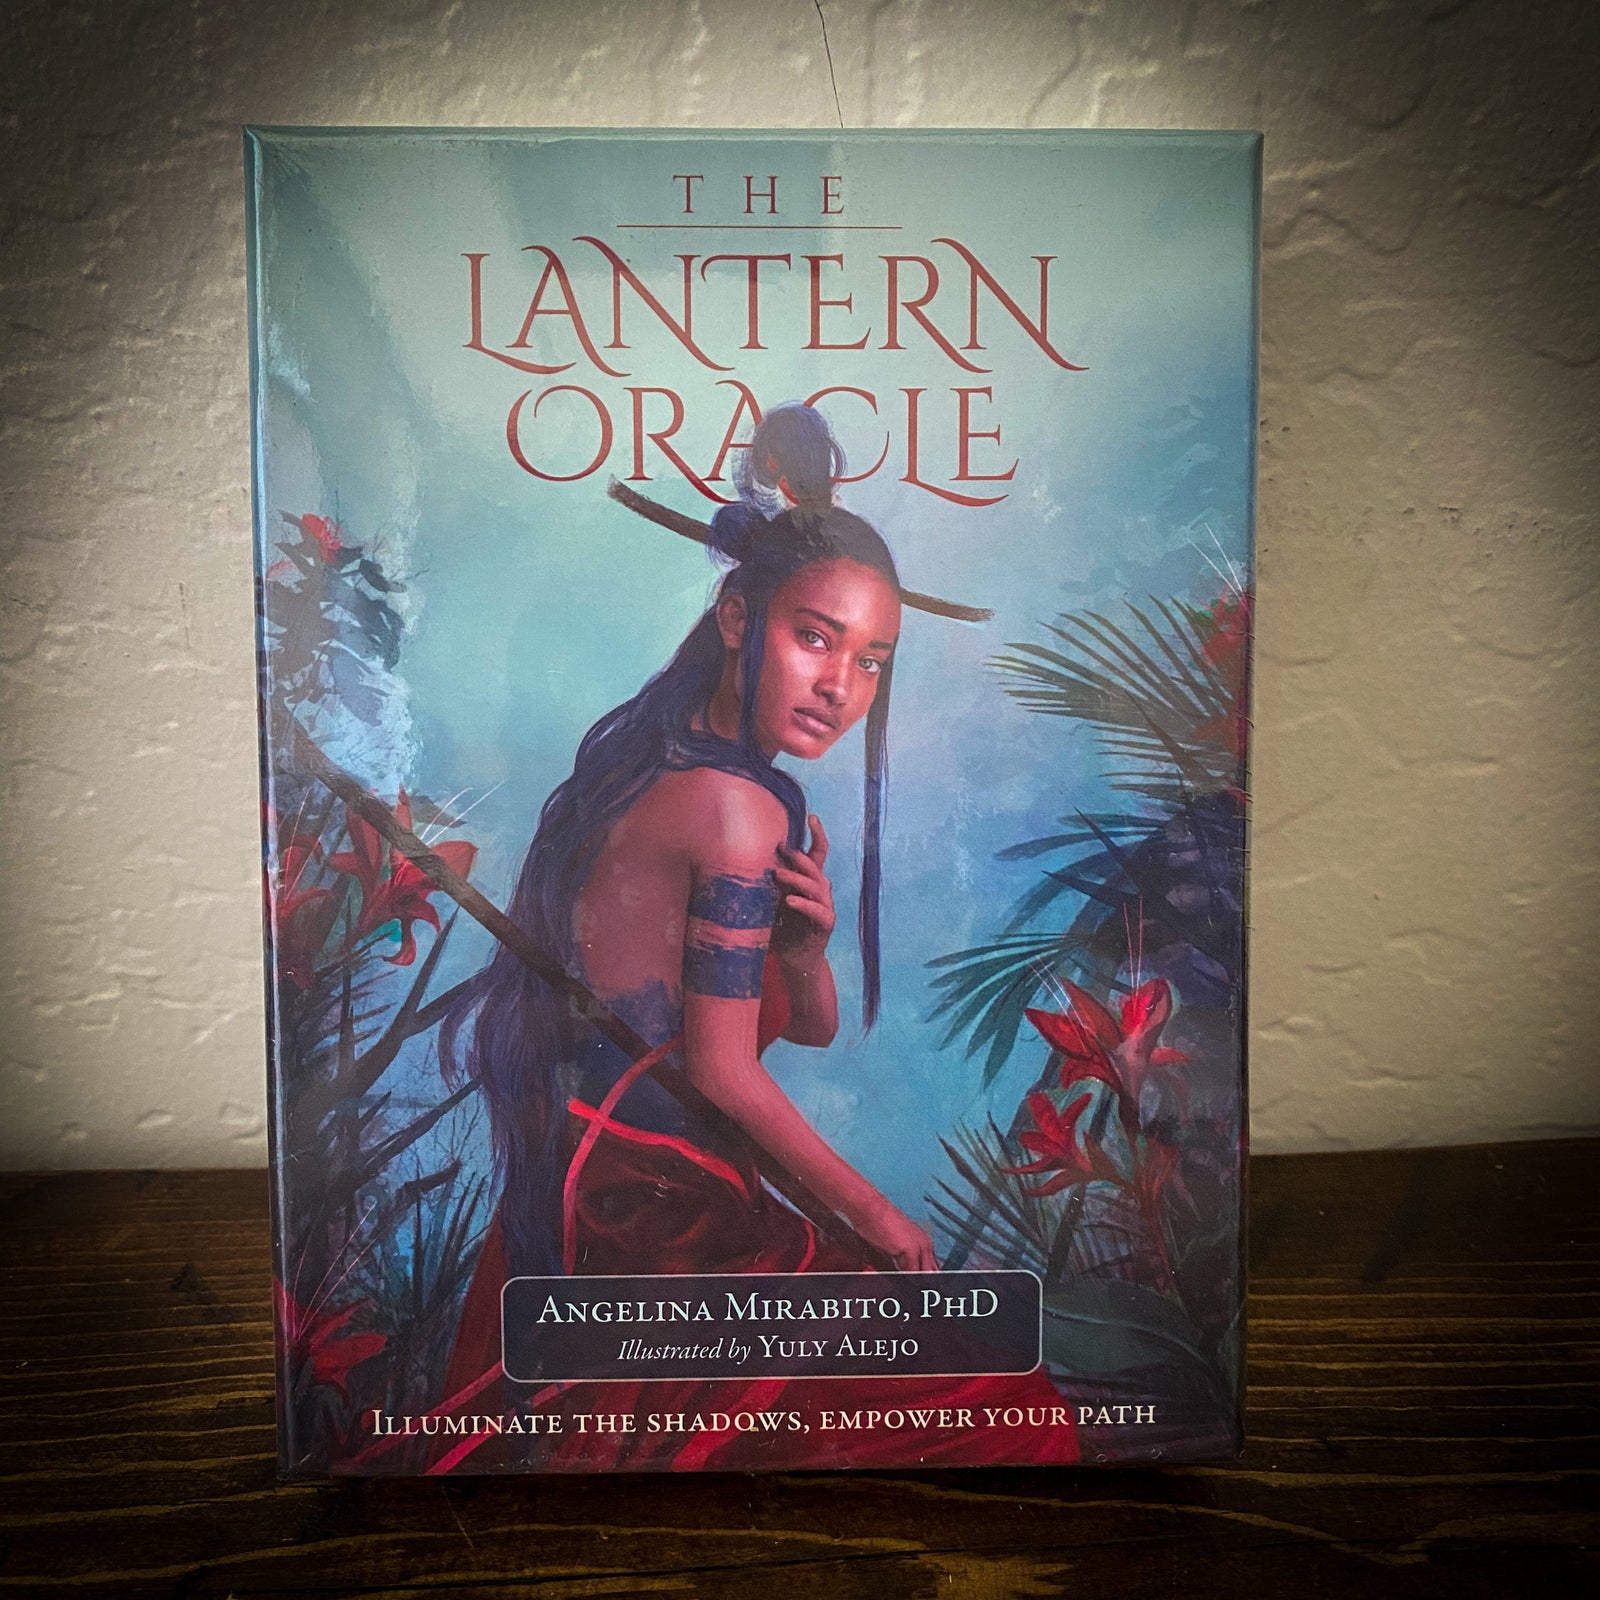 The Lantern Oracle